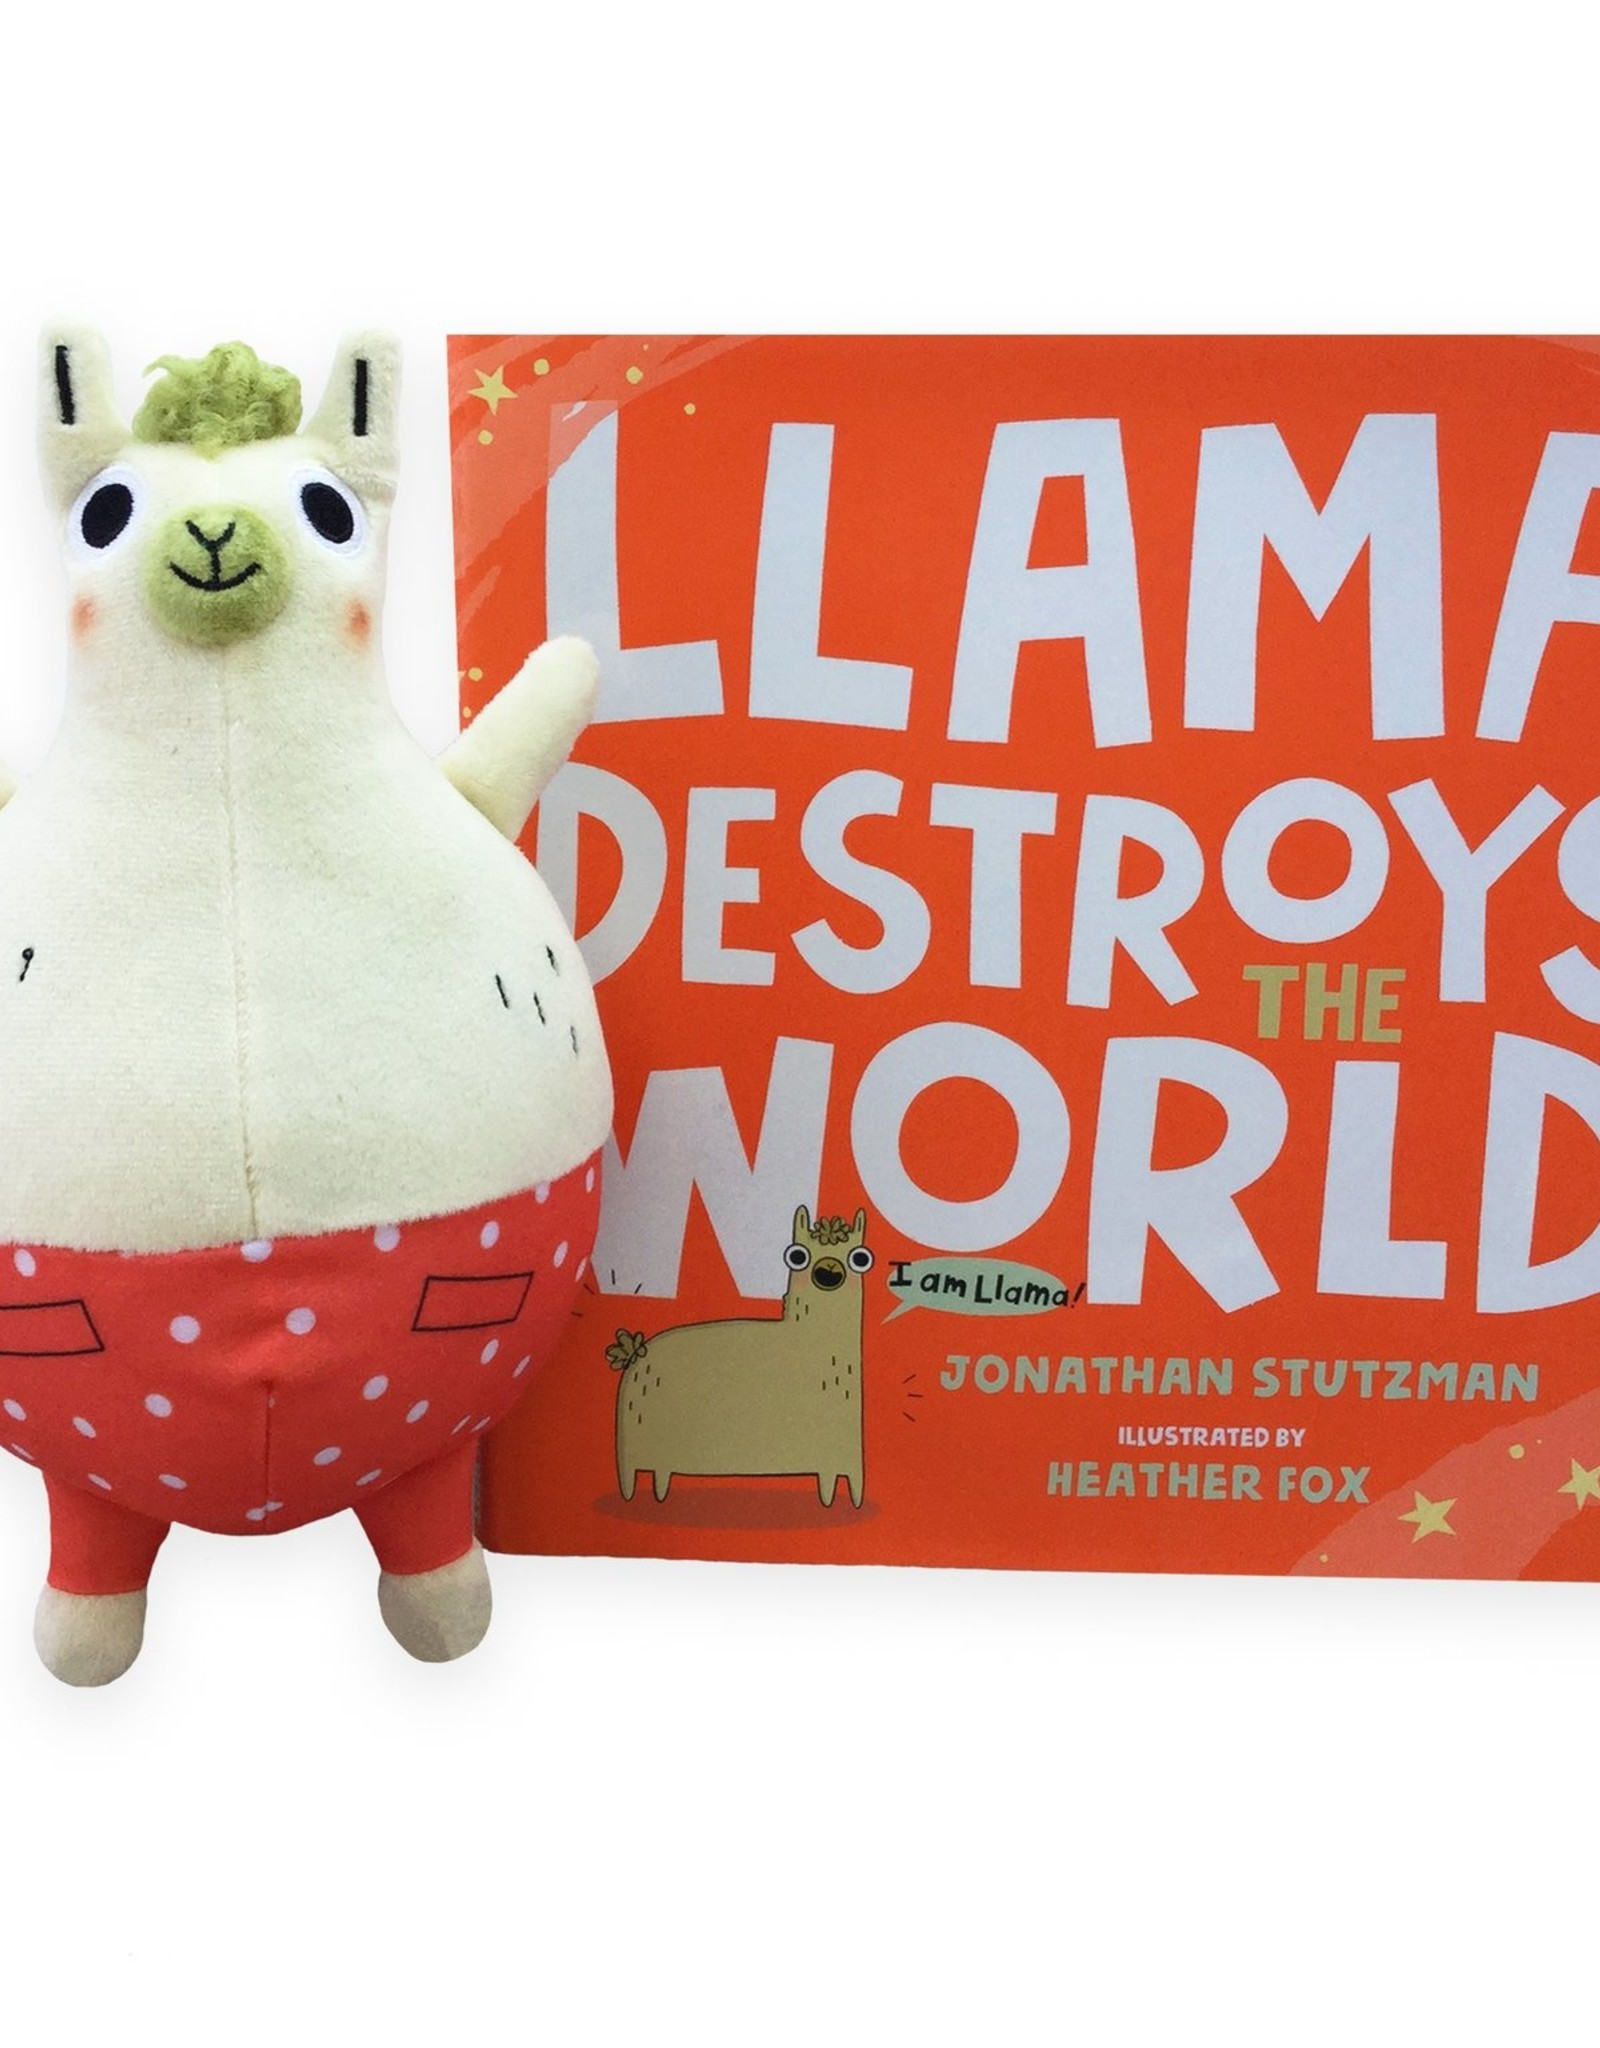 MerryMakers Llama Destroys the World - Book and Doll